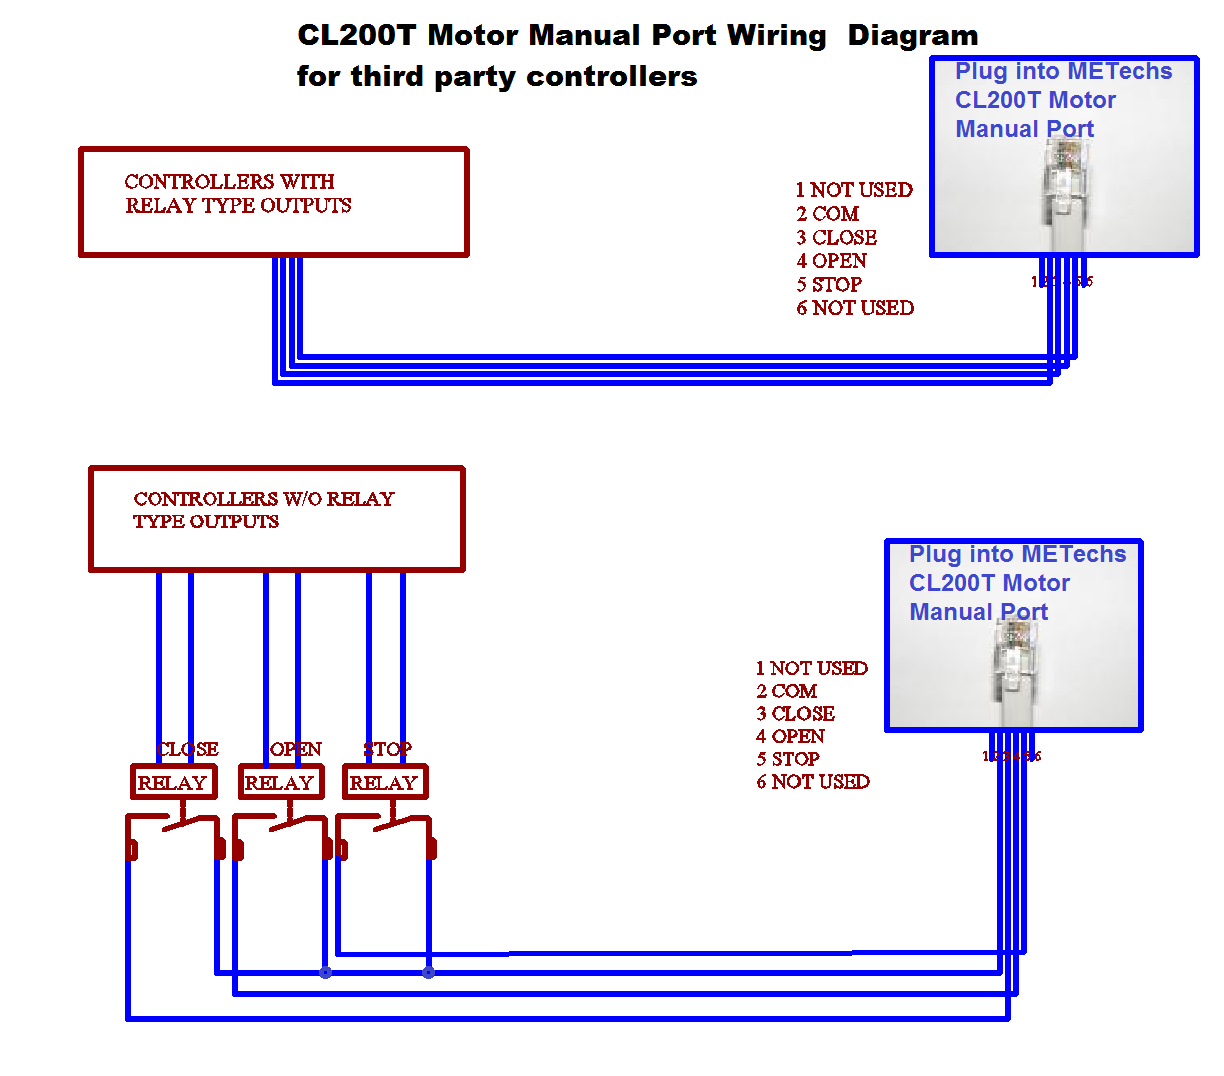 Port_Wiring_Diagram_CL200T_controller wiring diagram for cl200t controlled by third part controller remote door lock wiring diagram at cos-gaming.co